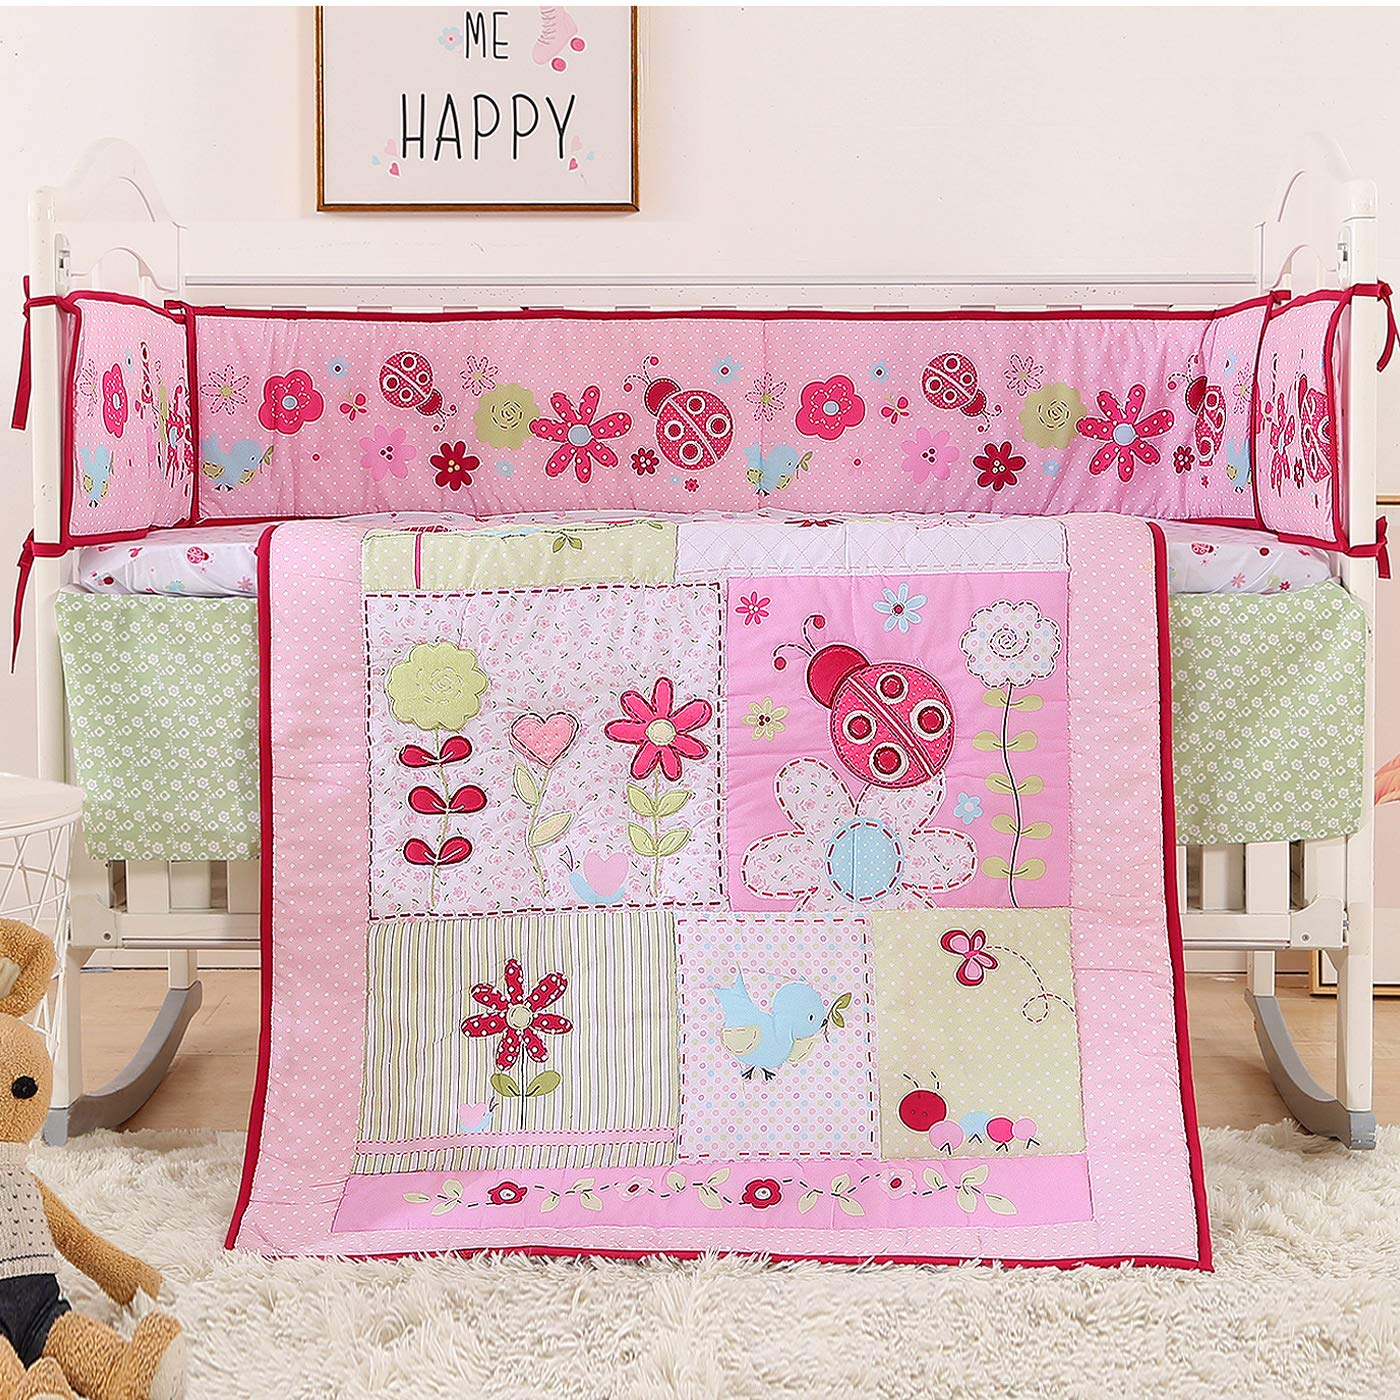 Pink Floral Ladybug Baby Crib Bedding Sets 7 Pieces  4 Bumper Pads (7 Pieces, Pink Flowers)